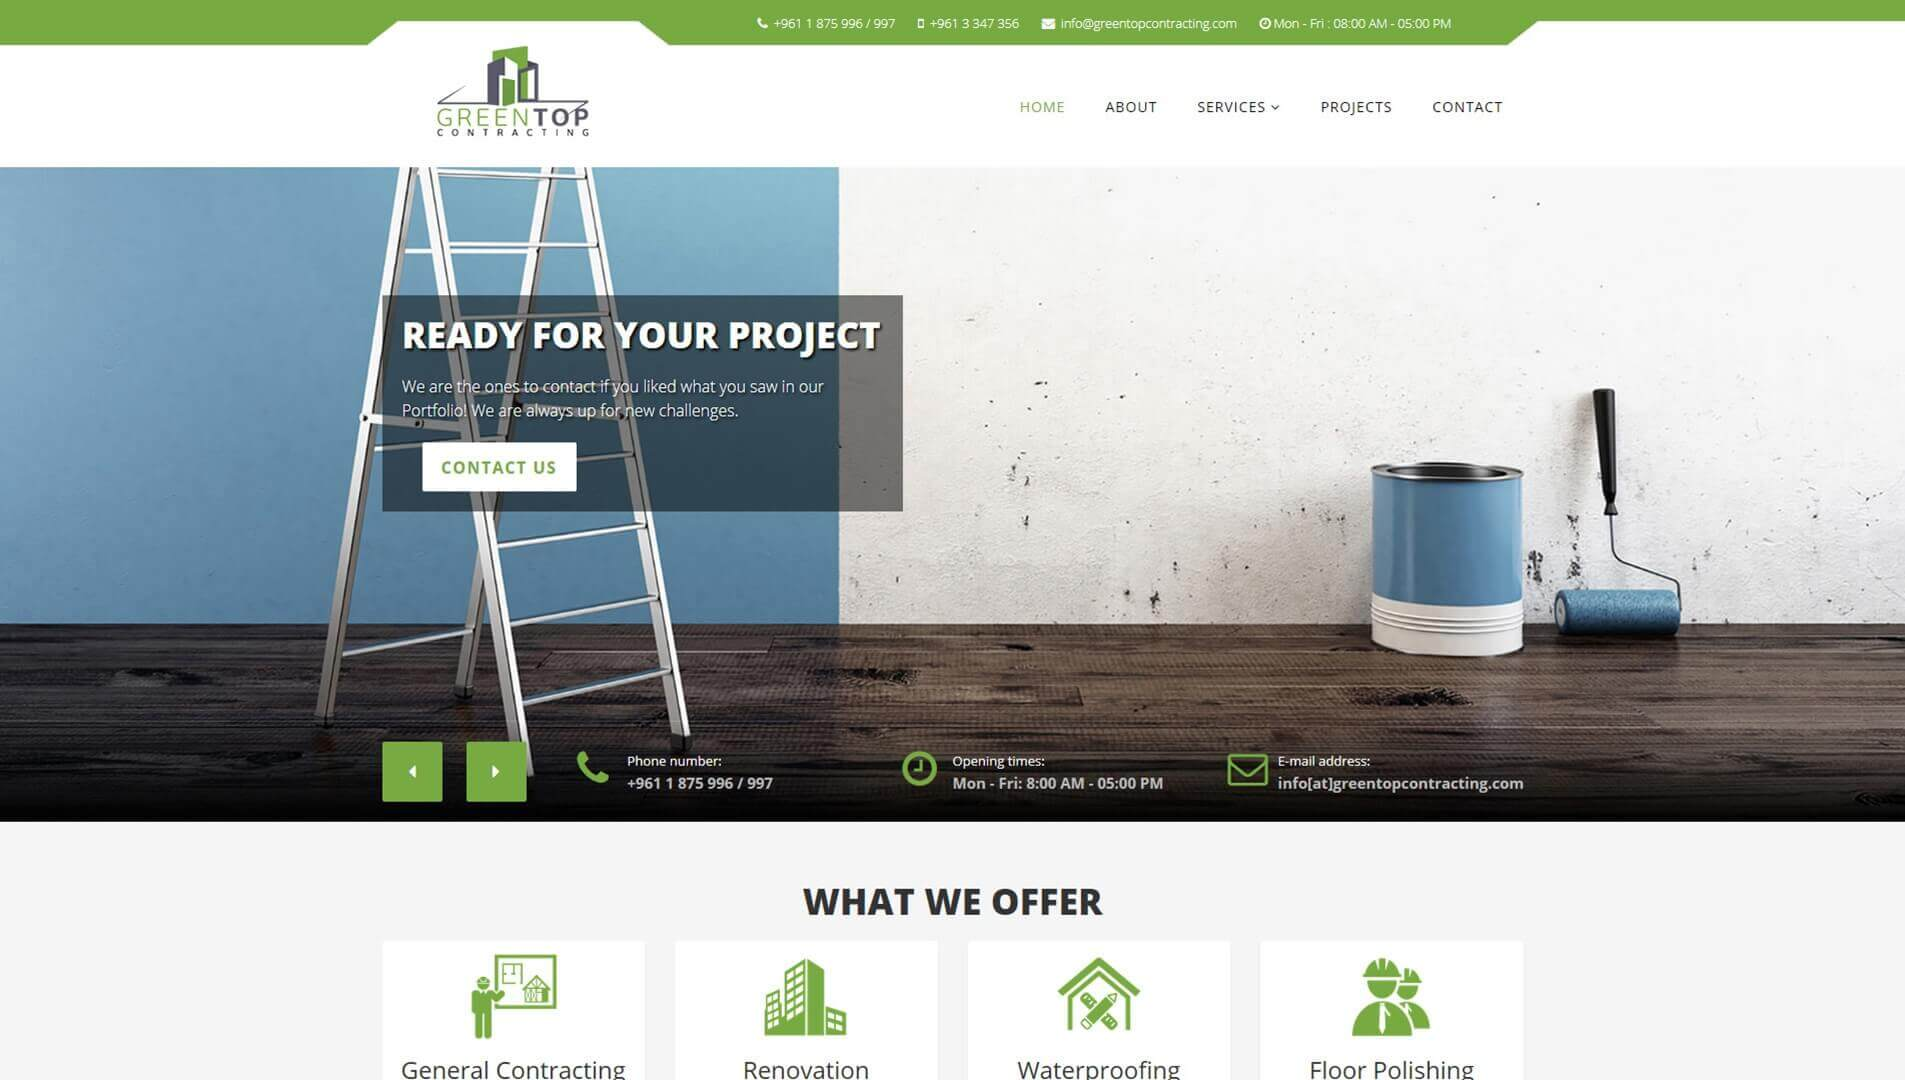 Green Top Contracting